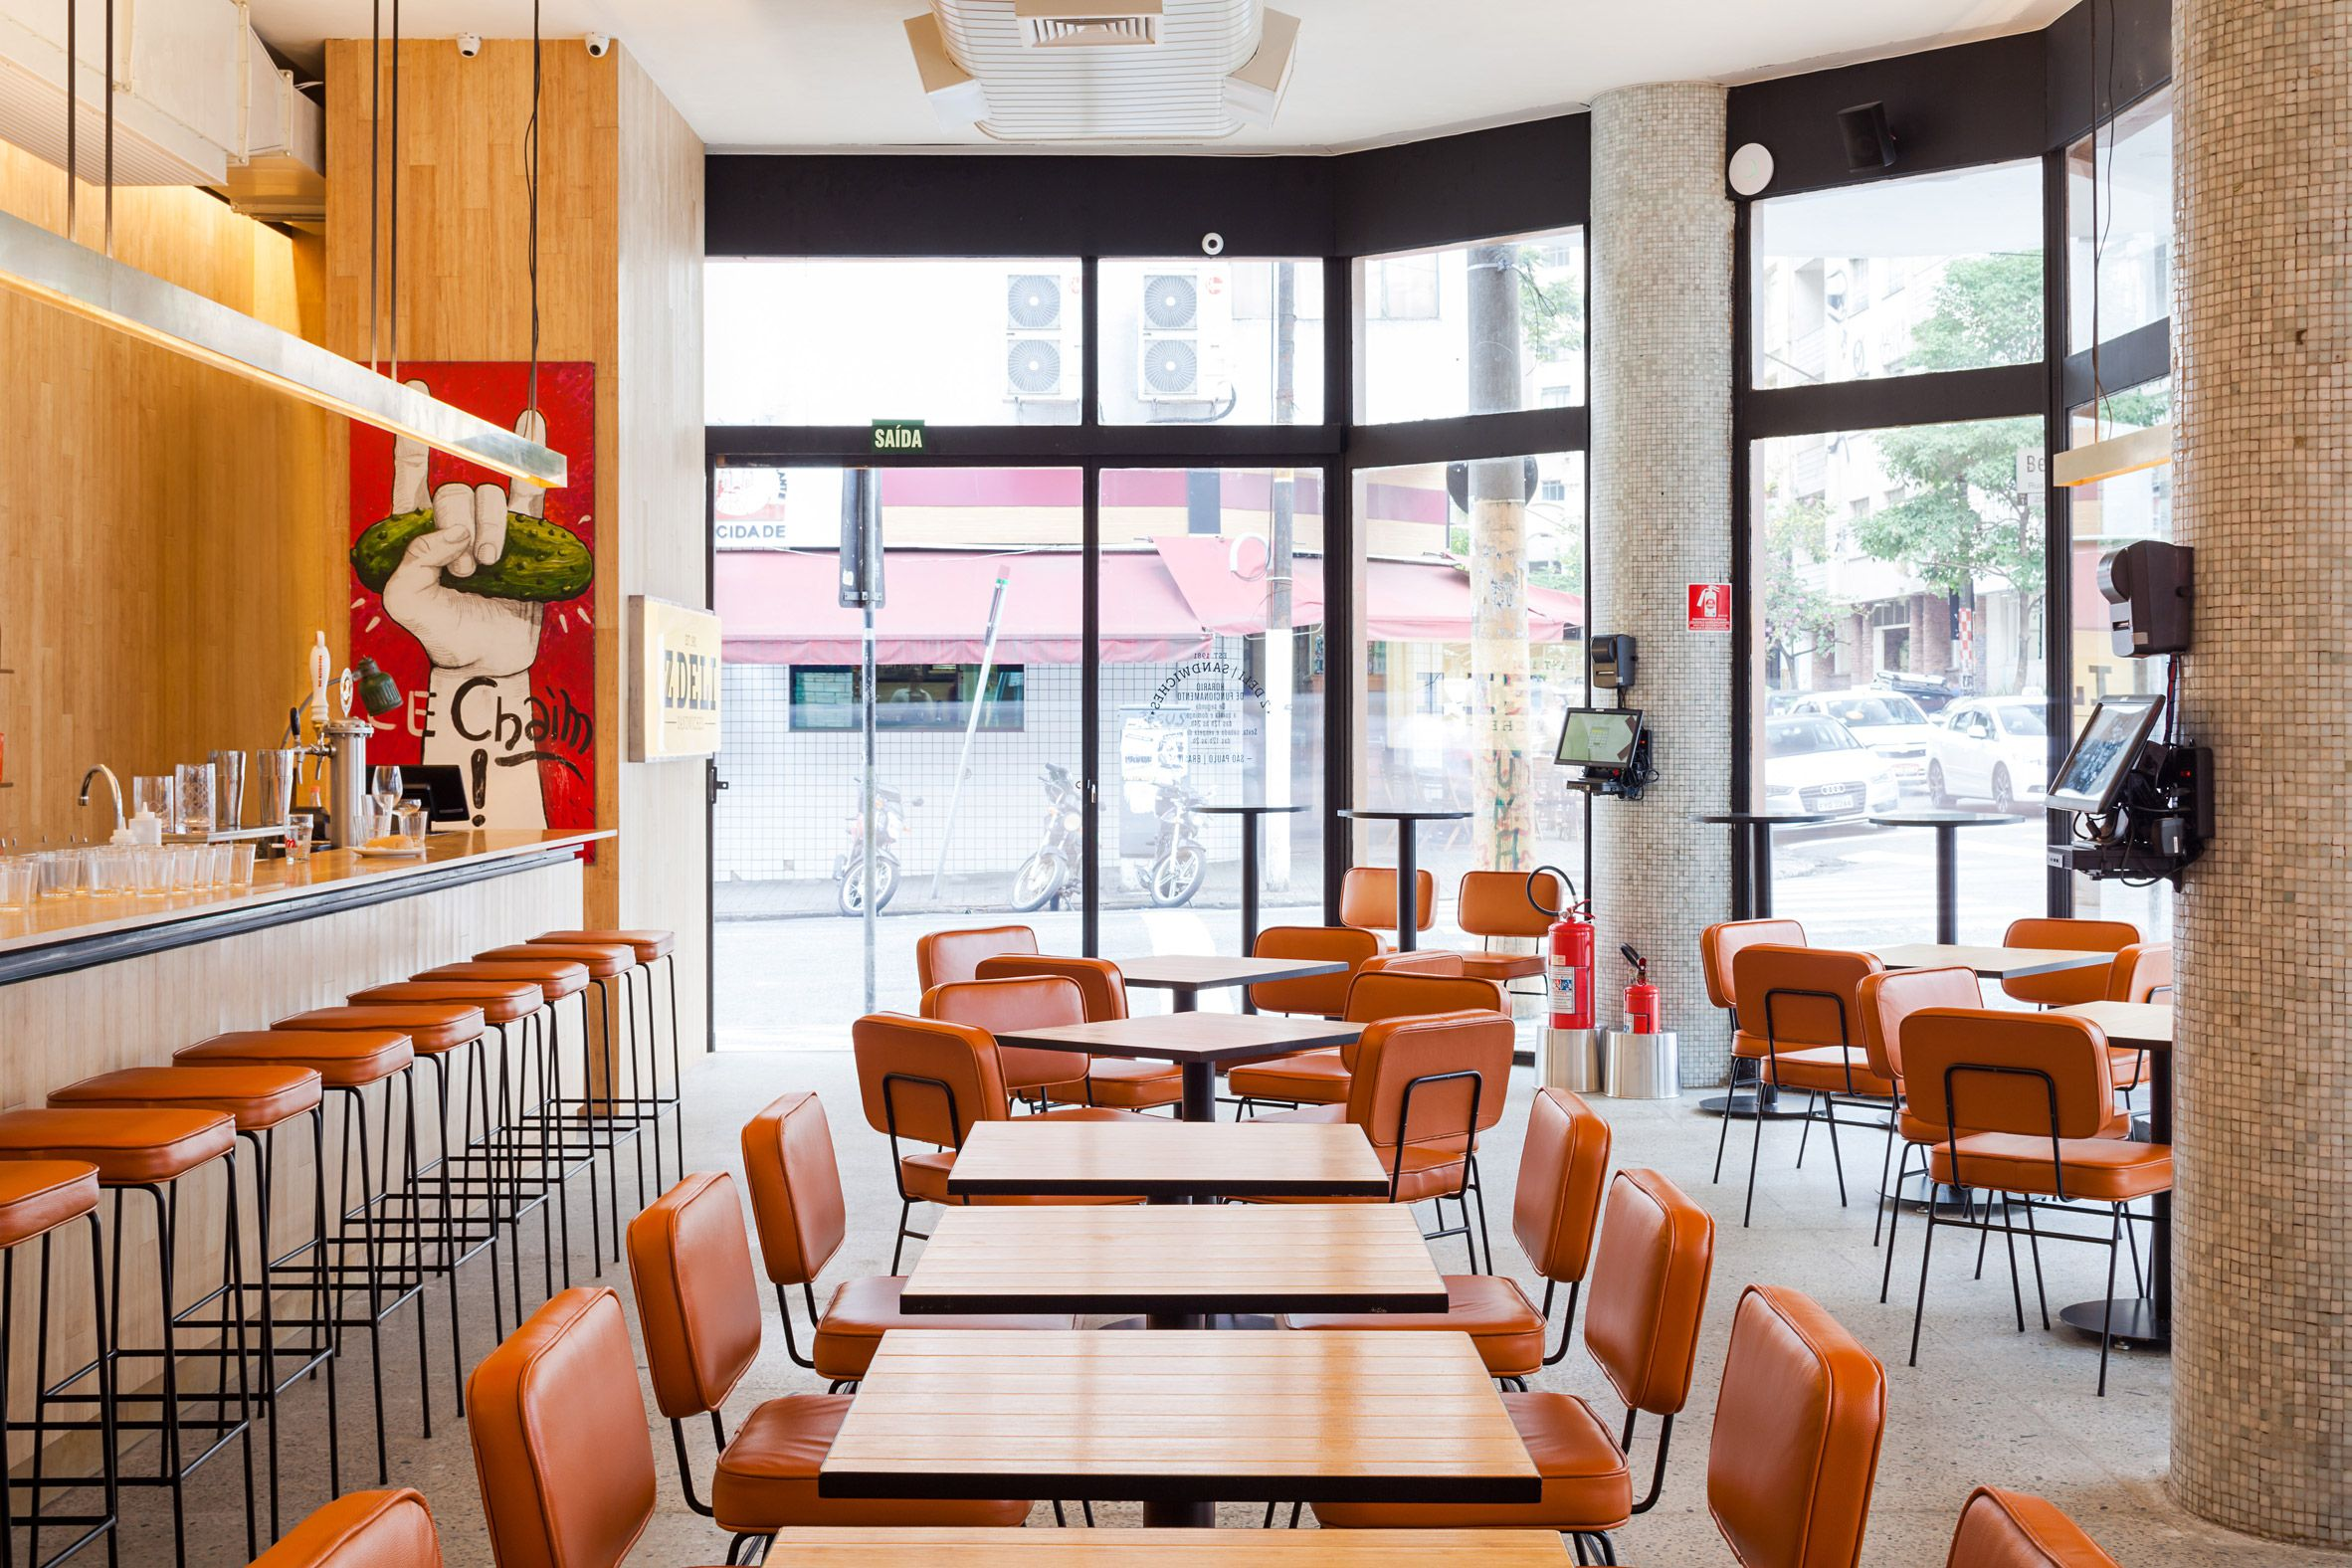 Architects Guilherme Pianca And Gabriel Kogan Toured São Paulo S Quaint Restaurants Dating Back To The 1950s Find References For A Sandwich In